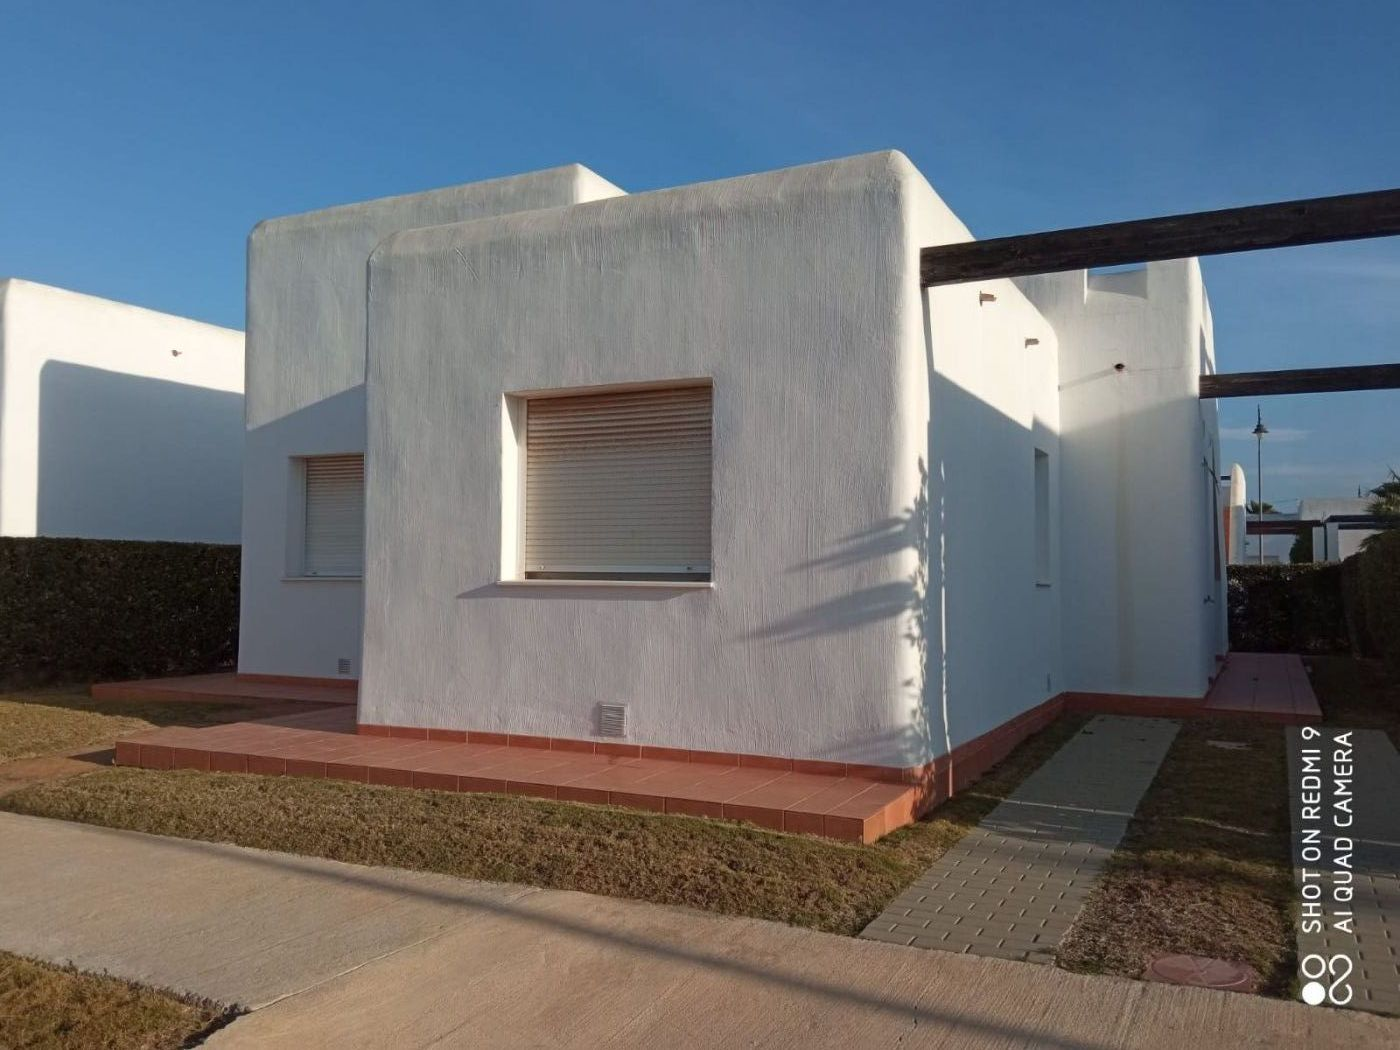 Gallery Image 24 of Villa Jana in need of some TLC for sale at bargain price